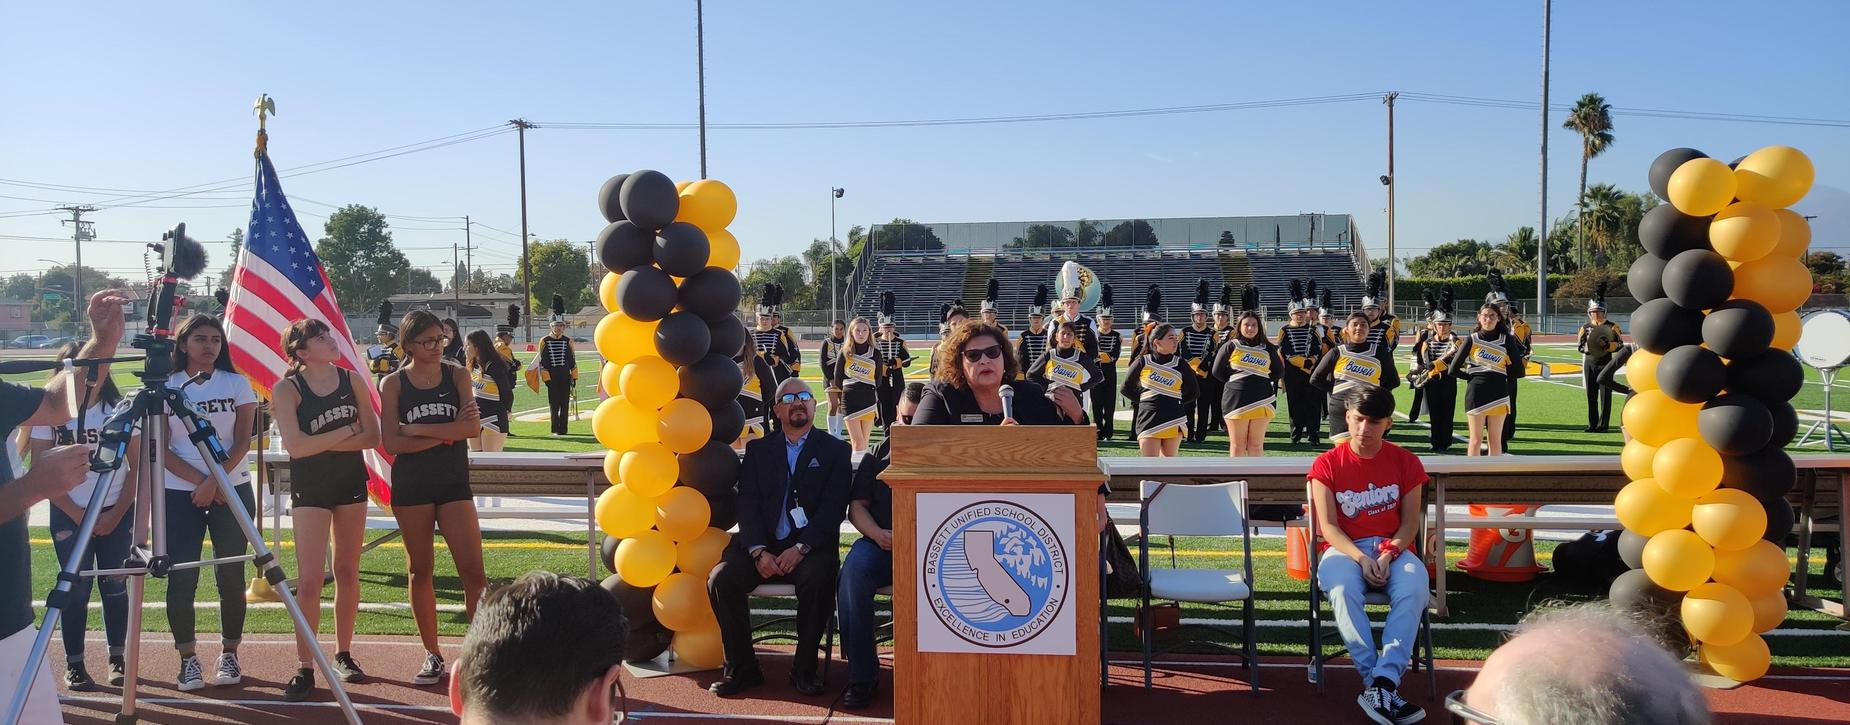 Ribbon cutting 10/18/19